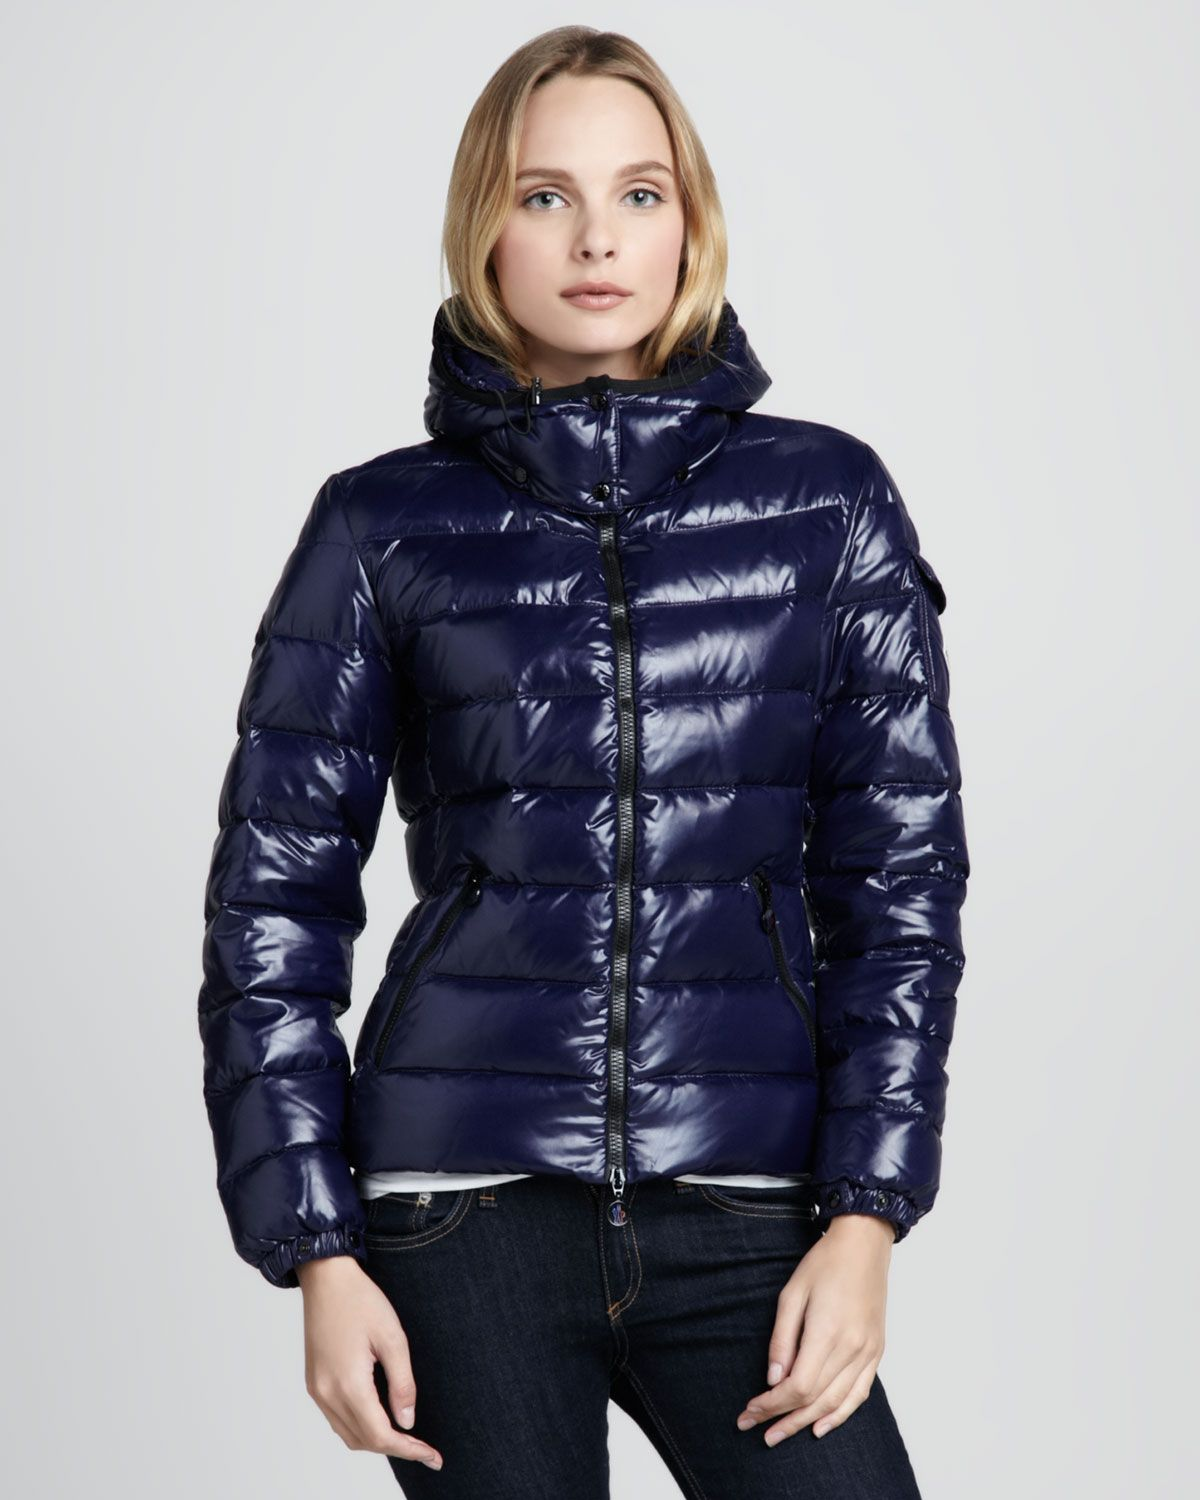 Women's Blue Bady Short Puffer Jacket | Puffer jackets, Jackets ...